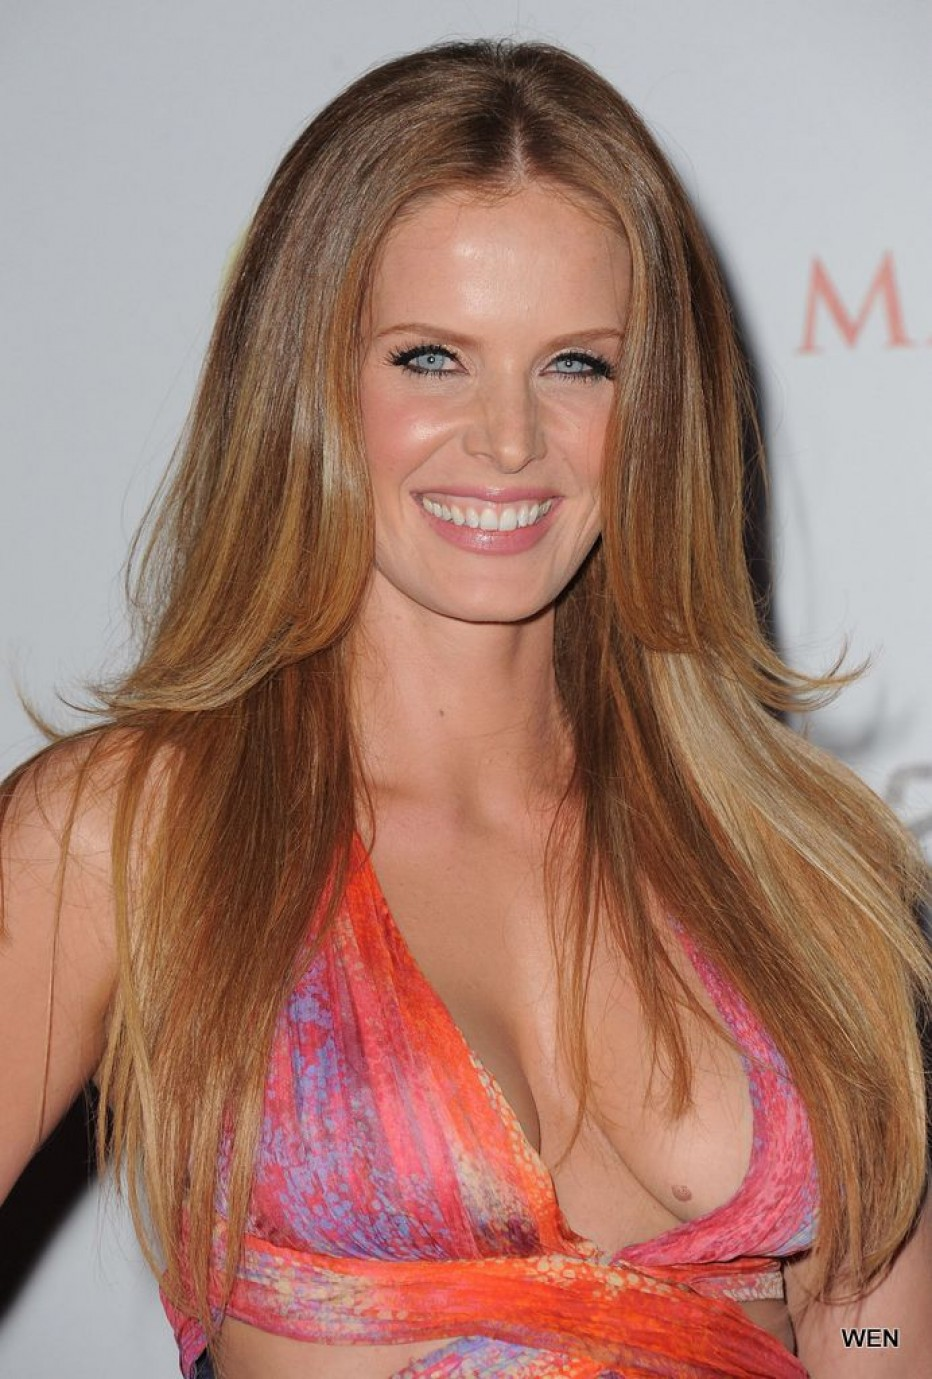 rebecca mader instagramrebecca mader instagram, rebecca mader twitter, rebecca mader 2017, rebecca mader iron man, rebecca mader fan site, rebecca mader brasil, rebecca mader eye color, rebecca mader interview, rebecca mader aim high, rebecca mader actress, rebecca mader gif hunt, rebecca mader site, rebecca mader age, rebecca mader iron man 3, rebecca mader tumblr, rebecca mader 2016, rebecca mader quotes, rebecca mader facts, rebecca mader snapchat, rebecca mader photo gallery